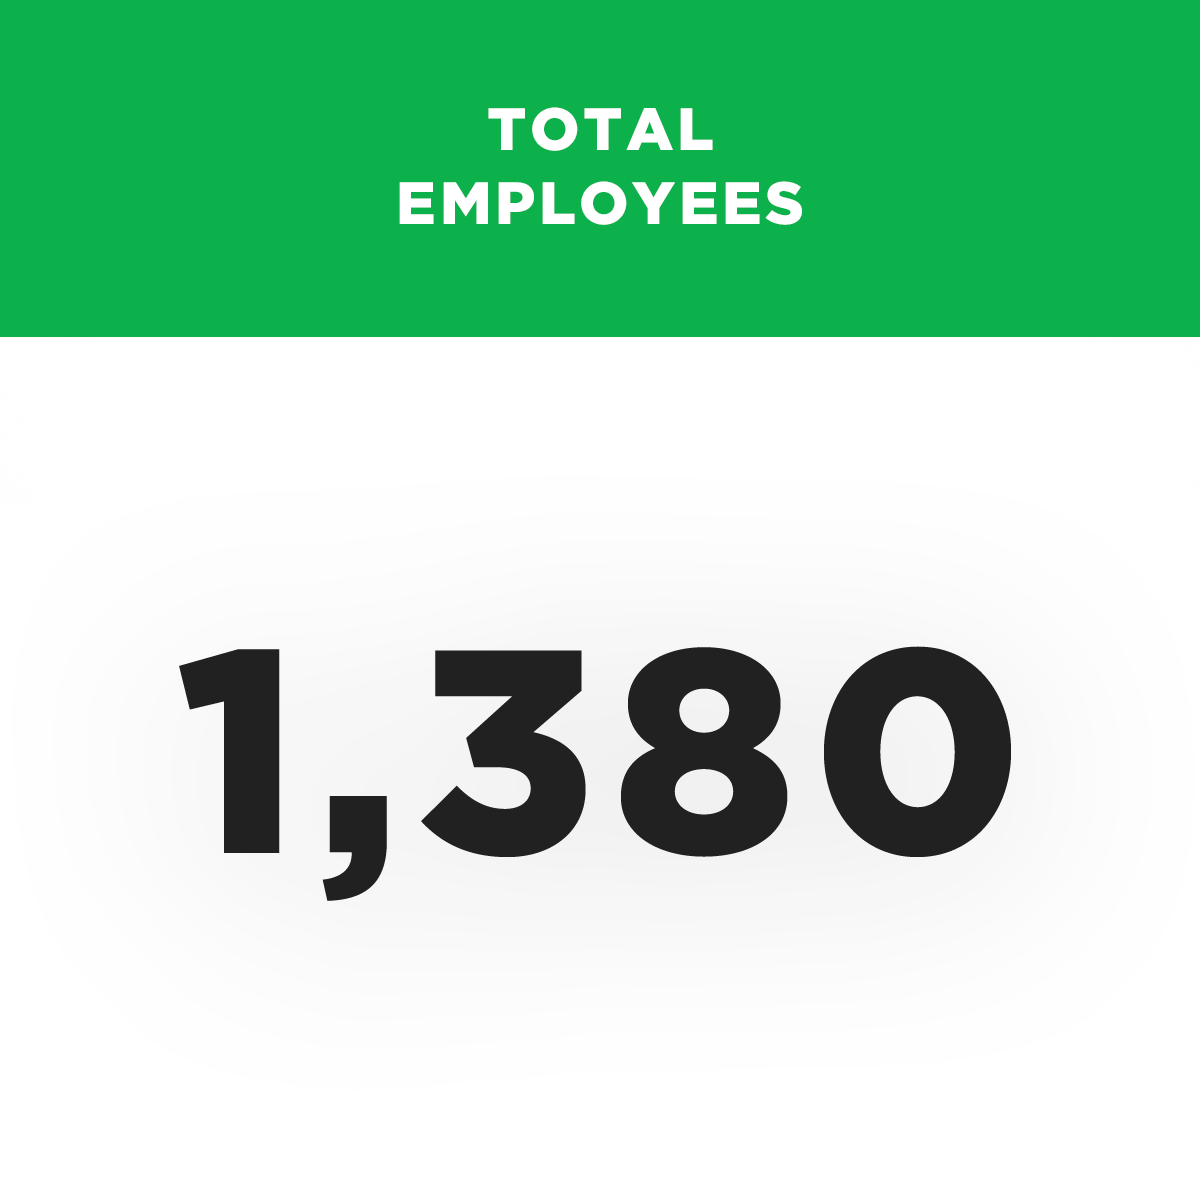 Total Employees - 1,380